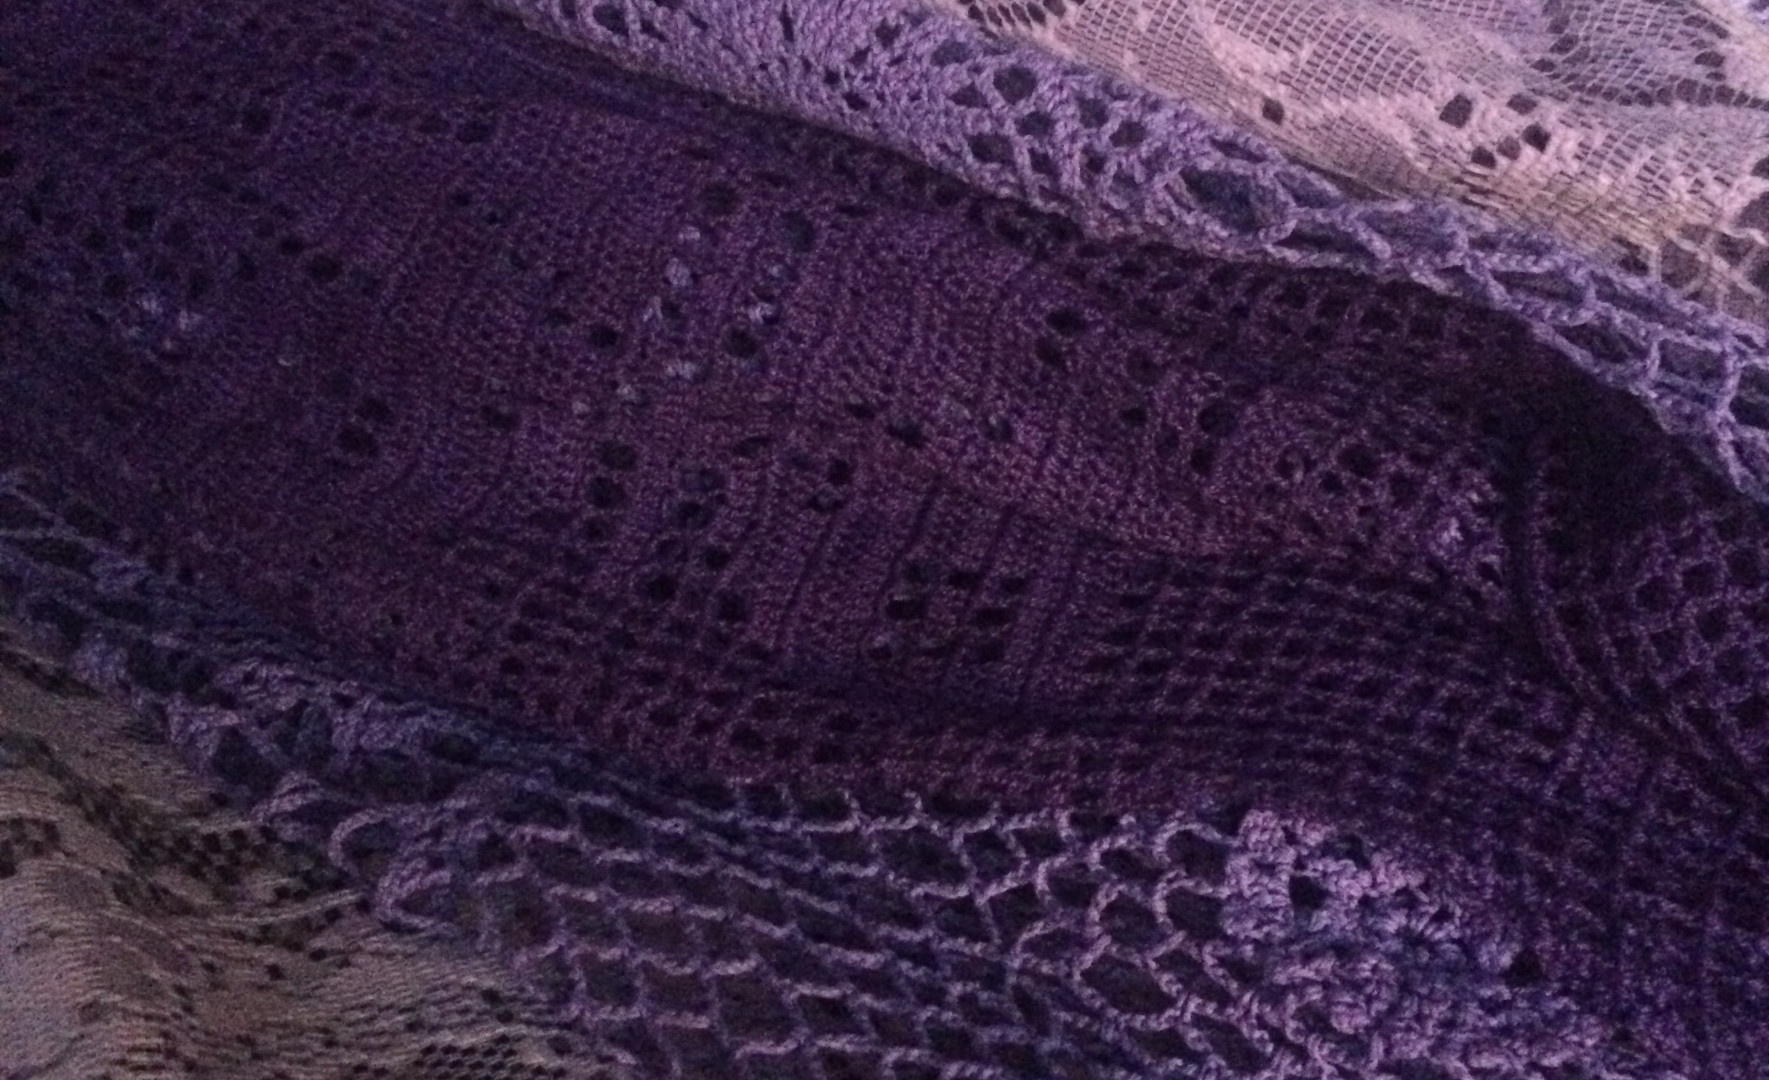 Hand dyed lace in progress